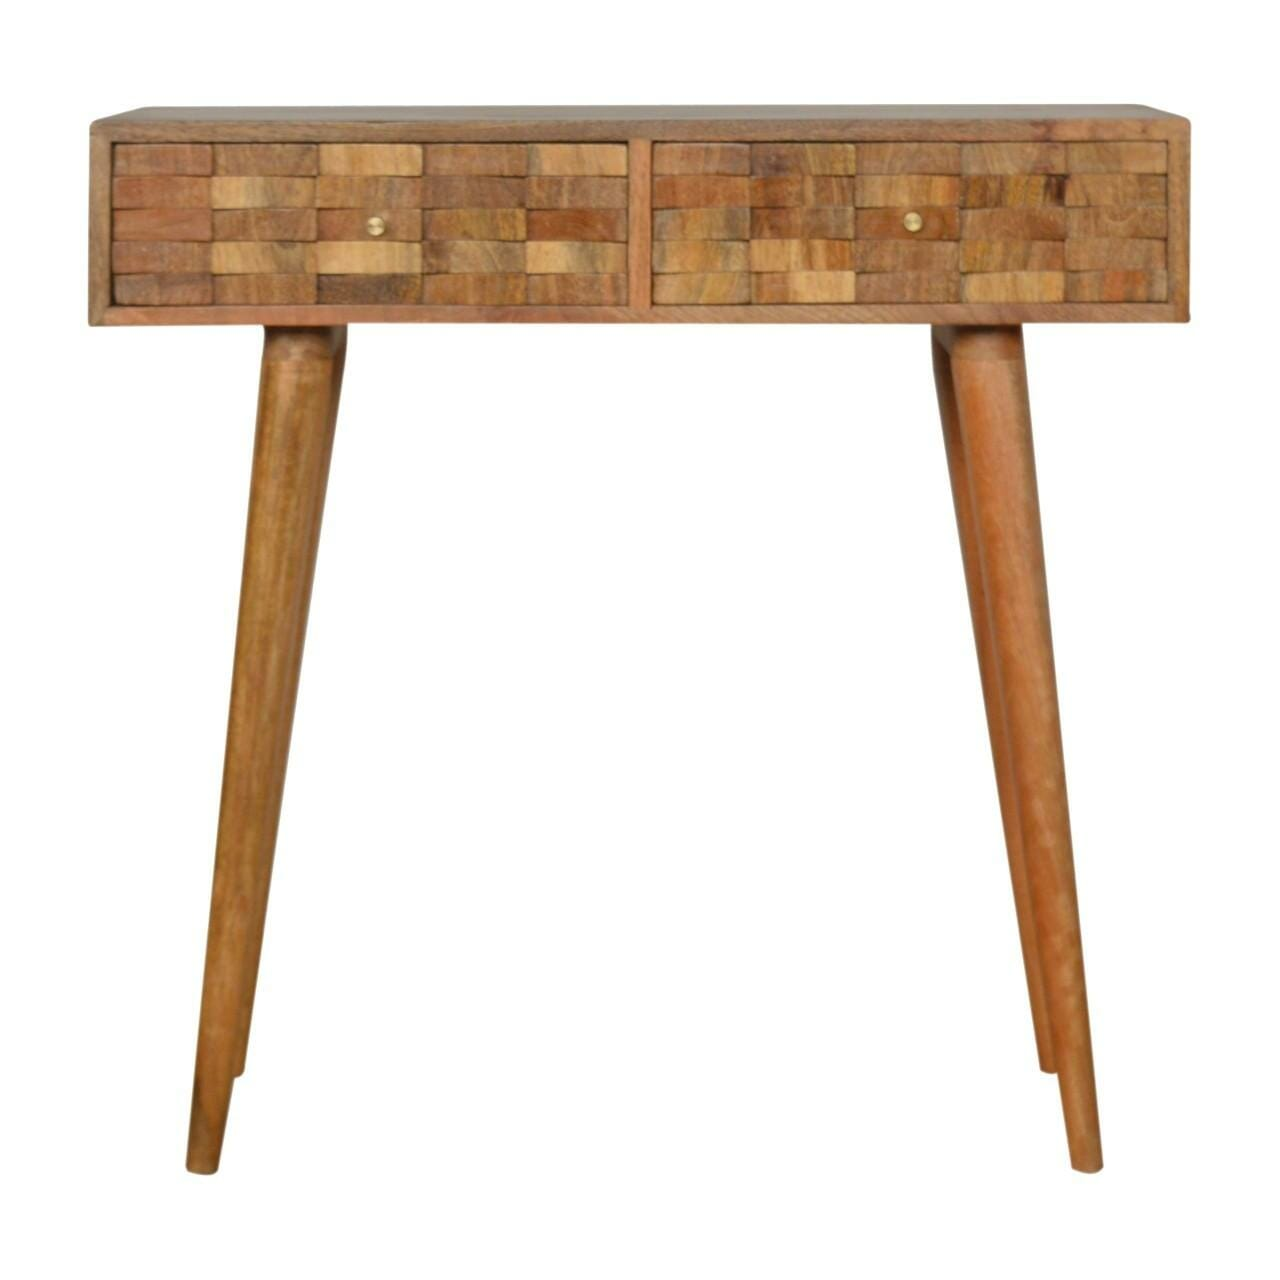 Tile Carved Console Table